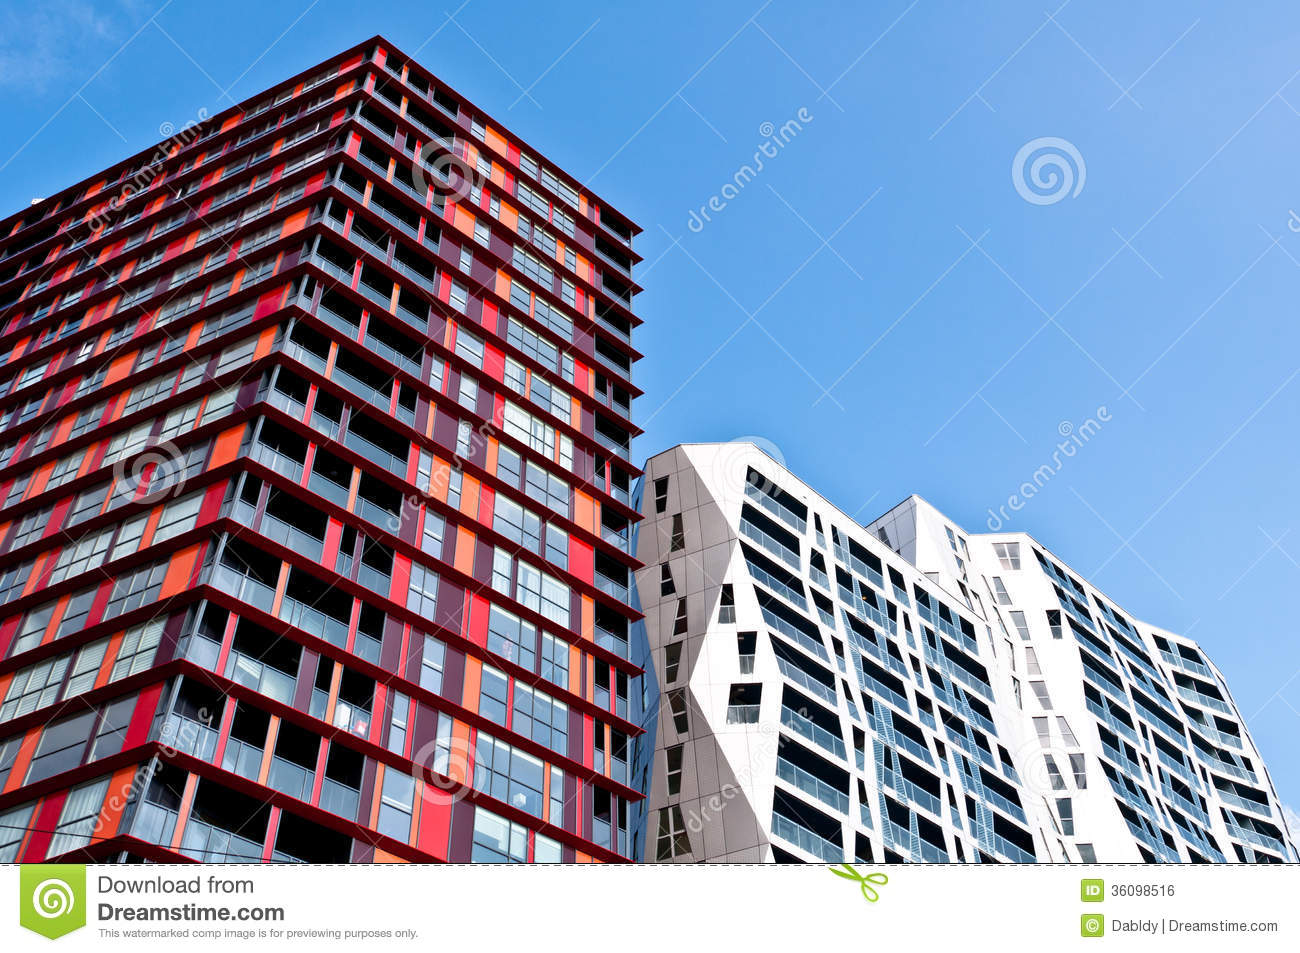 Modern apartment buildings royalty free stock image for New modern architecture